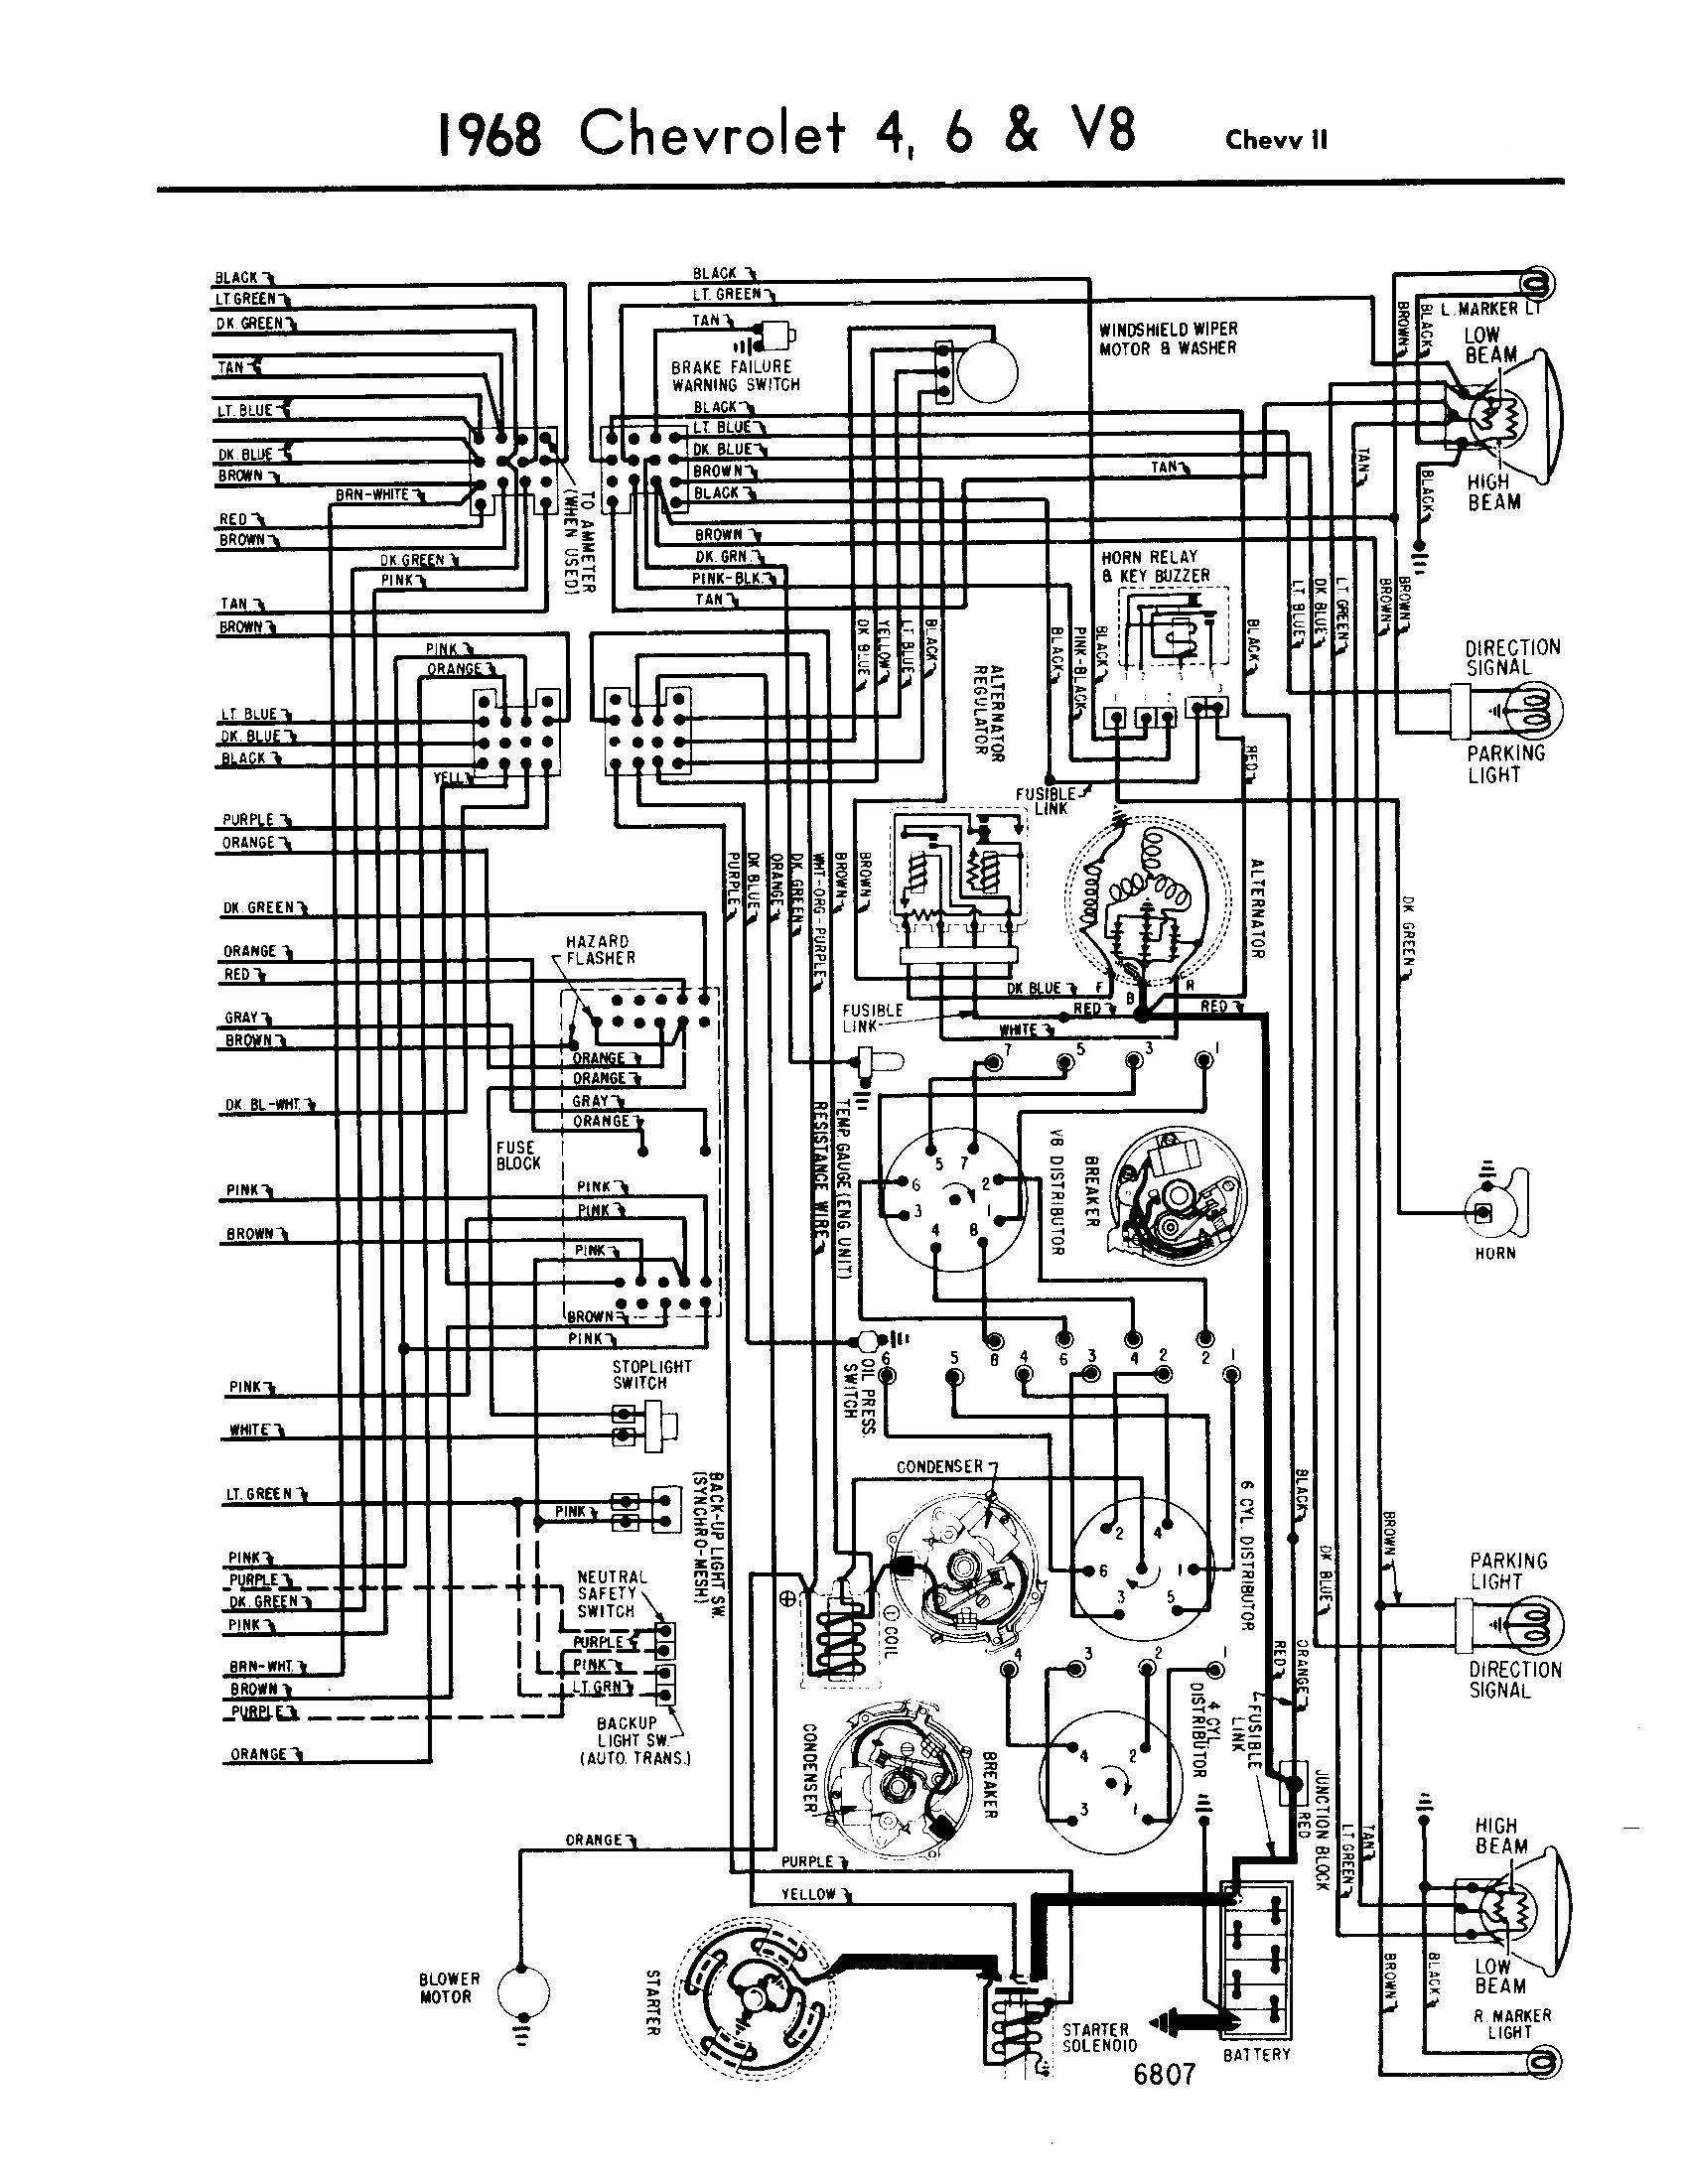 STRUCTURE 68 Camaro Starter Wiring Diagram FULL Version HD Quality Wiring  Diagram - CELLHEALTHY.KINGGO.FRcellhealthy kinggo fr